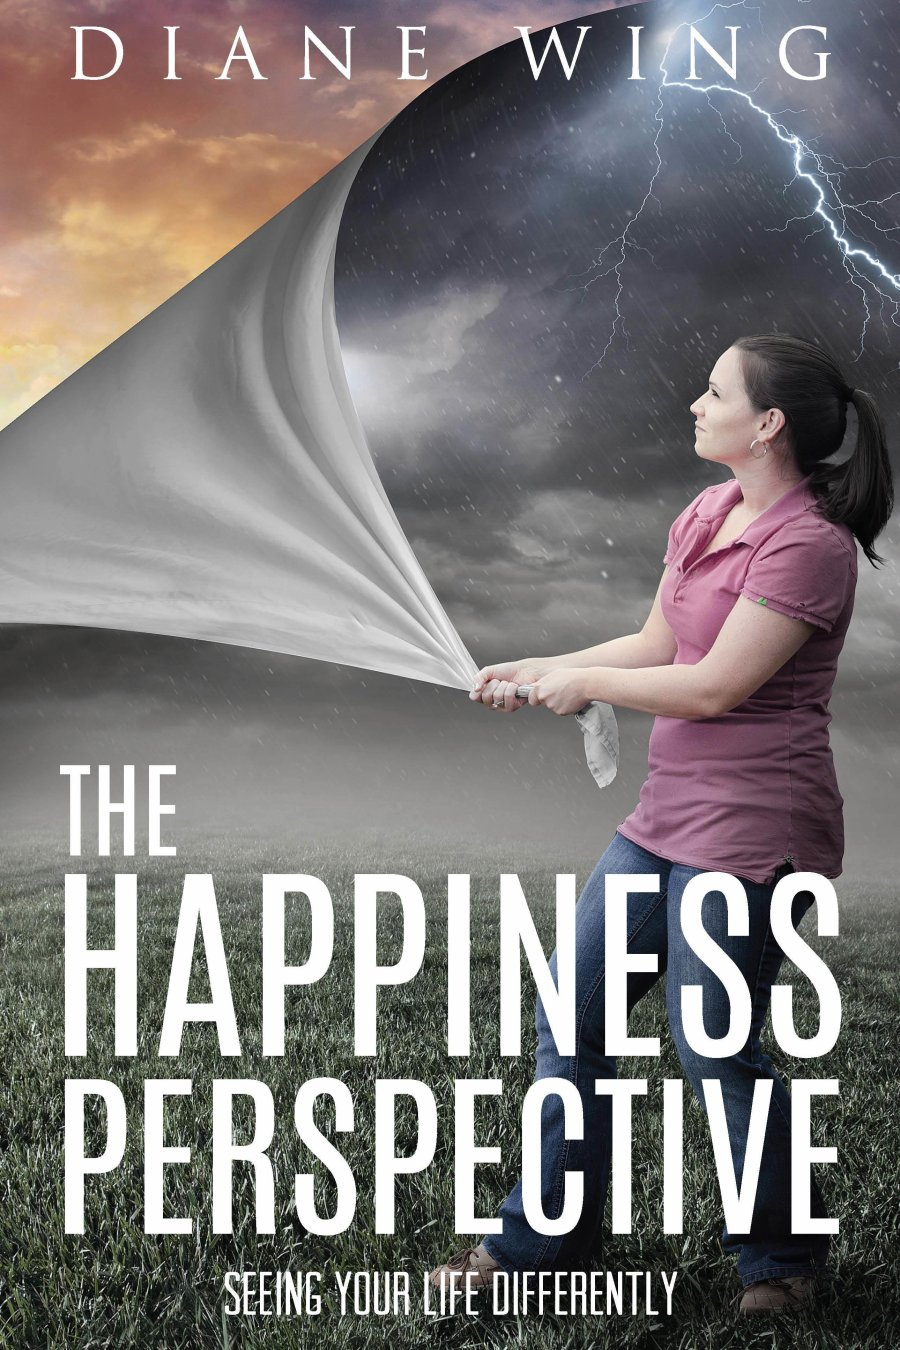 The Happiness Perspective: Seeing Your Life Differently 978-1-61599-320-8